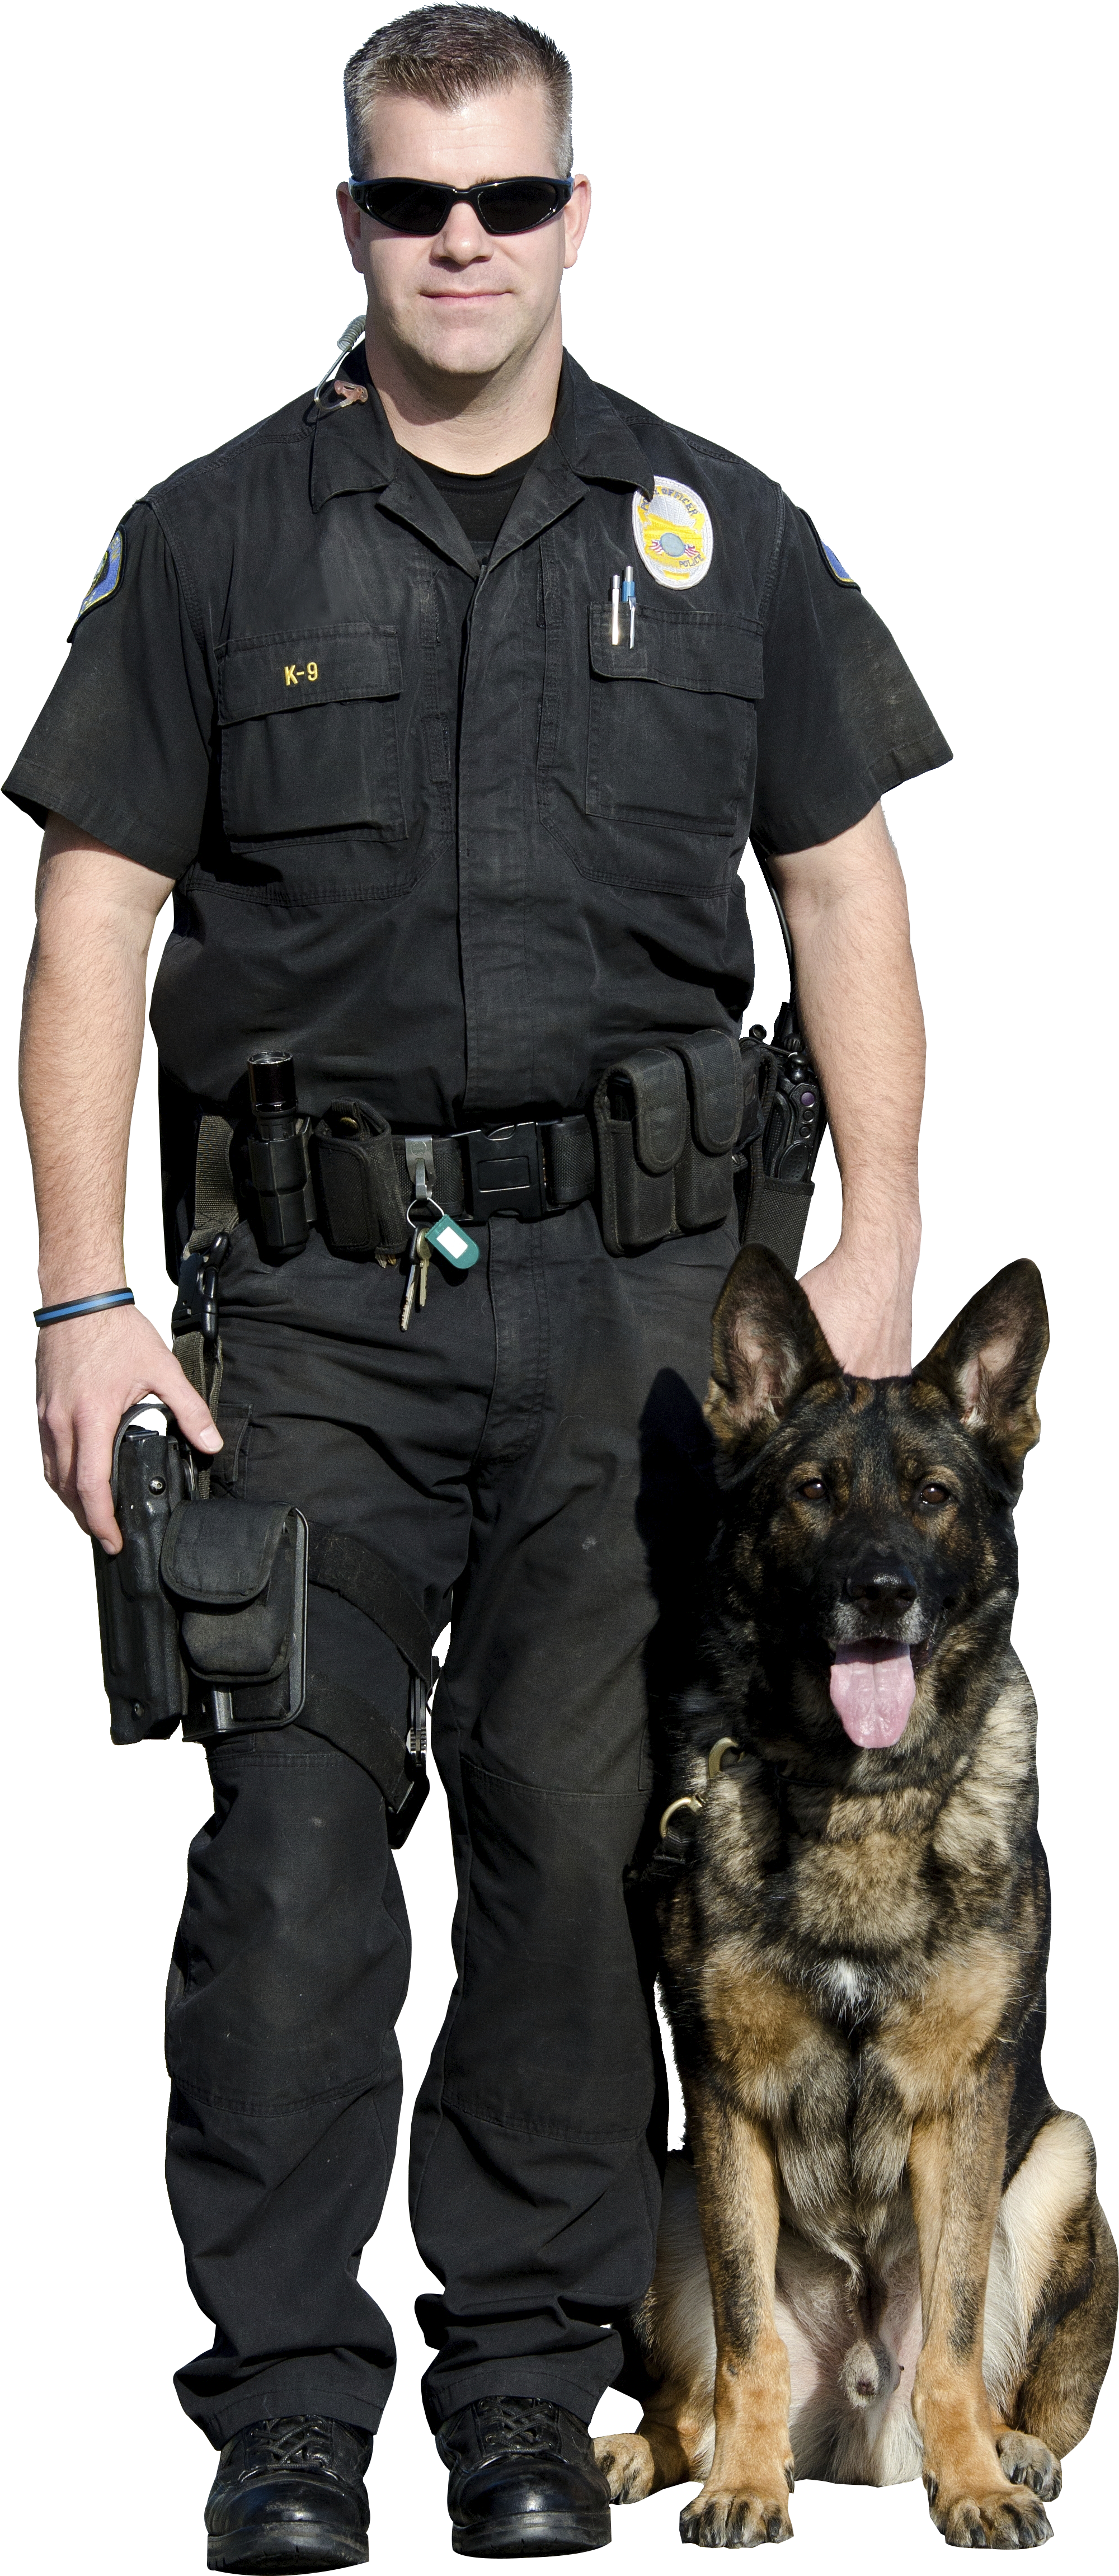 Download Cycle Cop PNG Image with No Background.